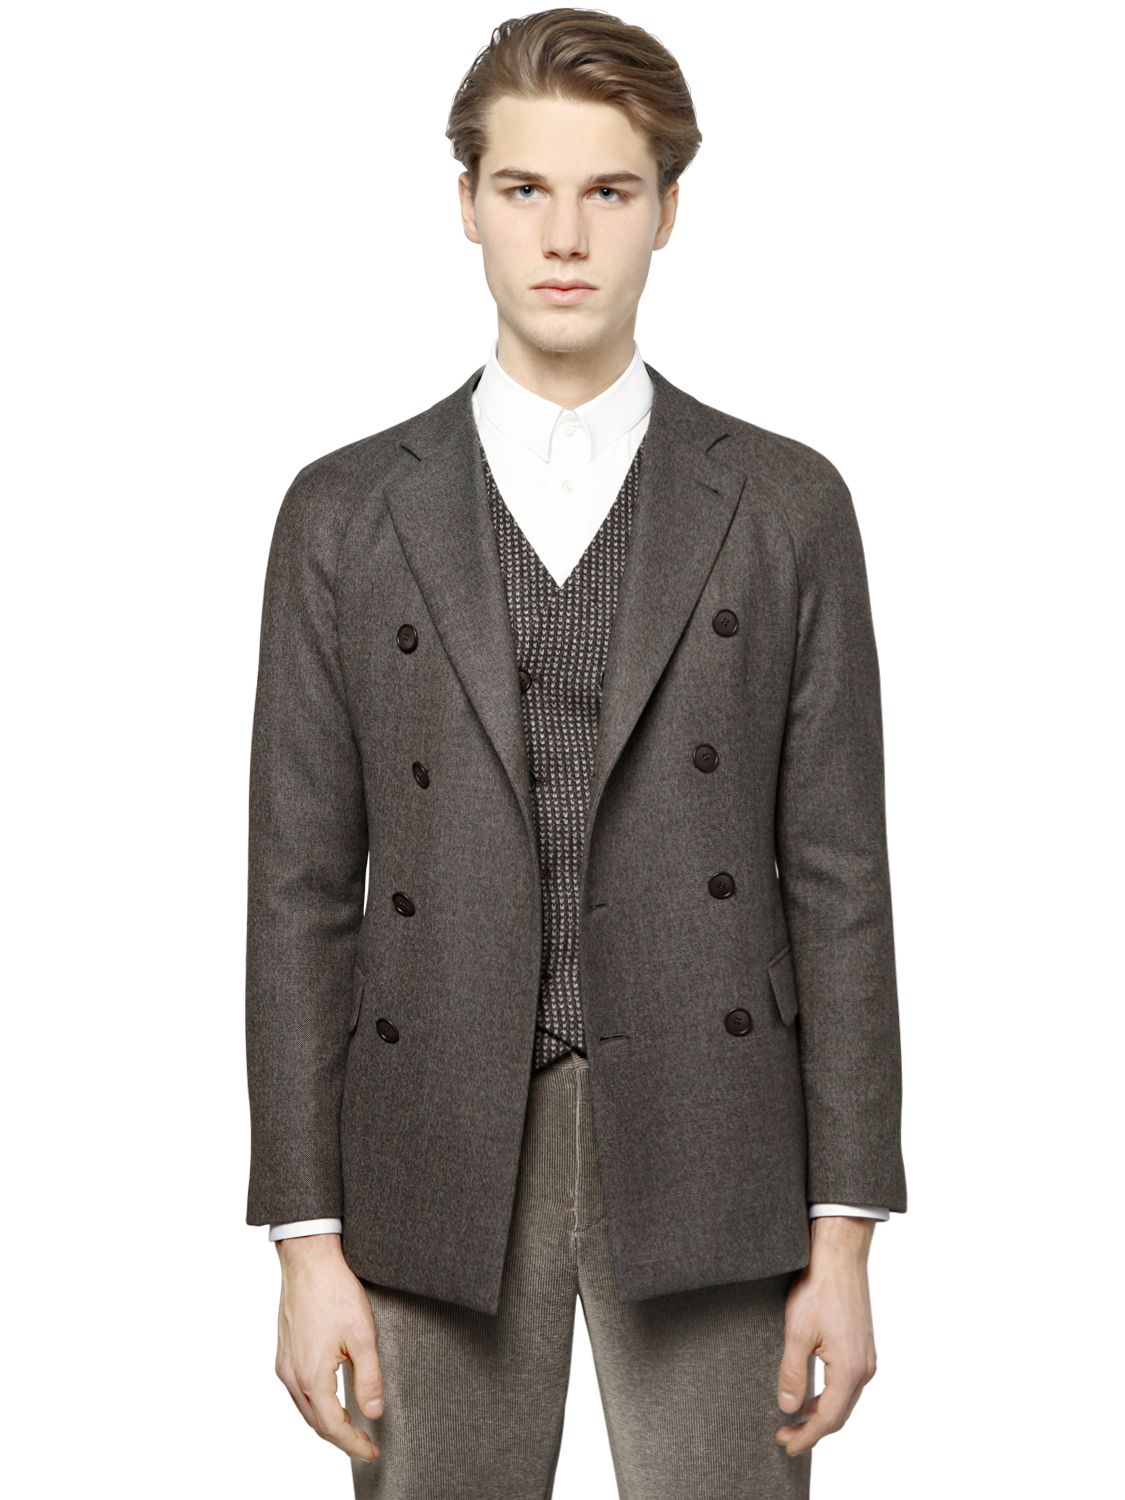 Giorgio armani Wool Blend Tweed Jacket in Brown for Men | Lyst